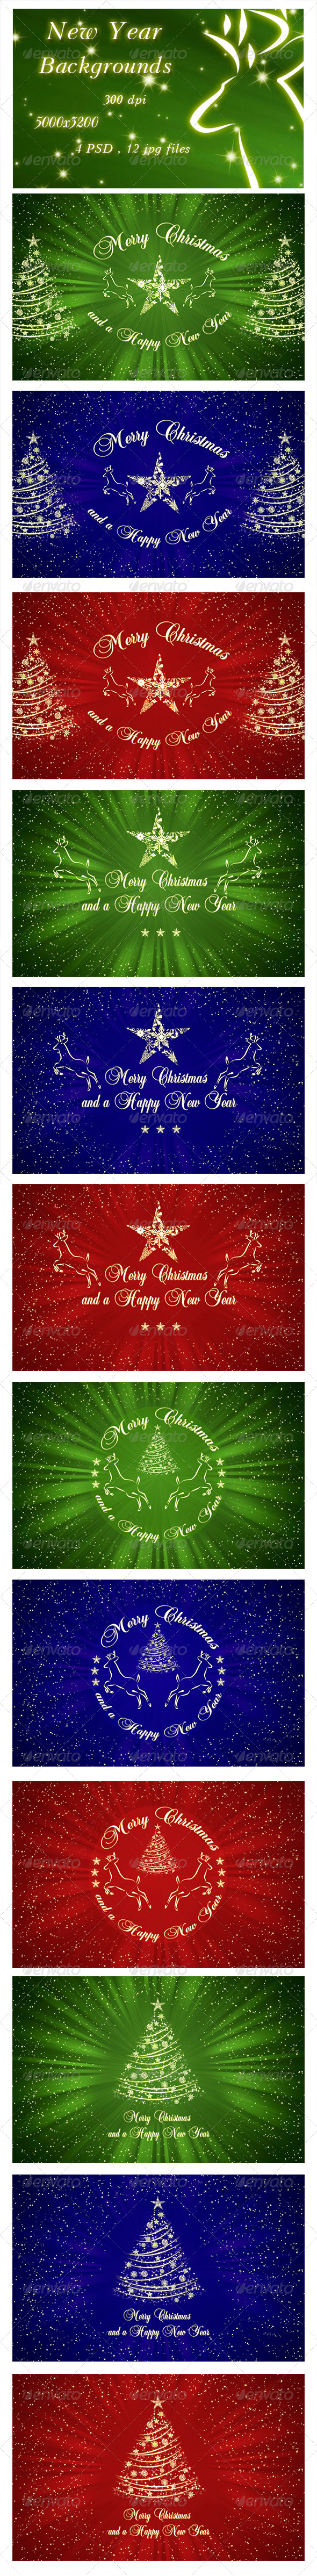 GraphicRiver New Year Backgrounds 6352122